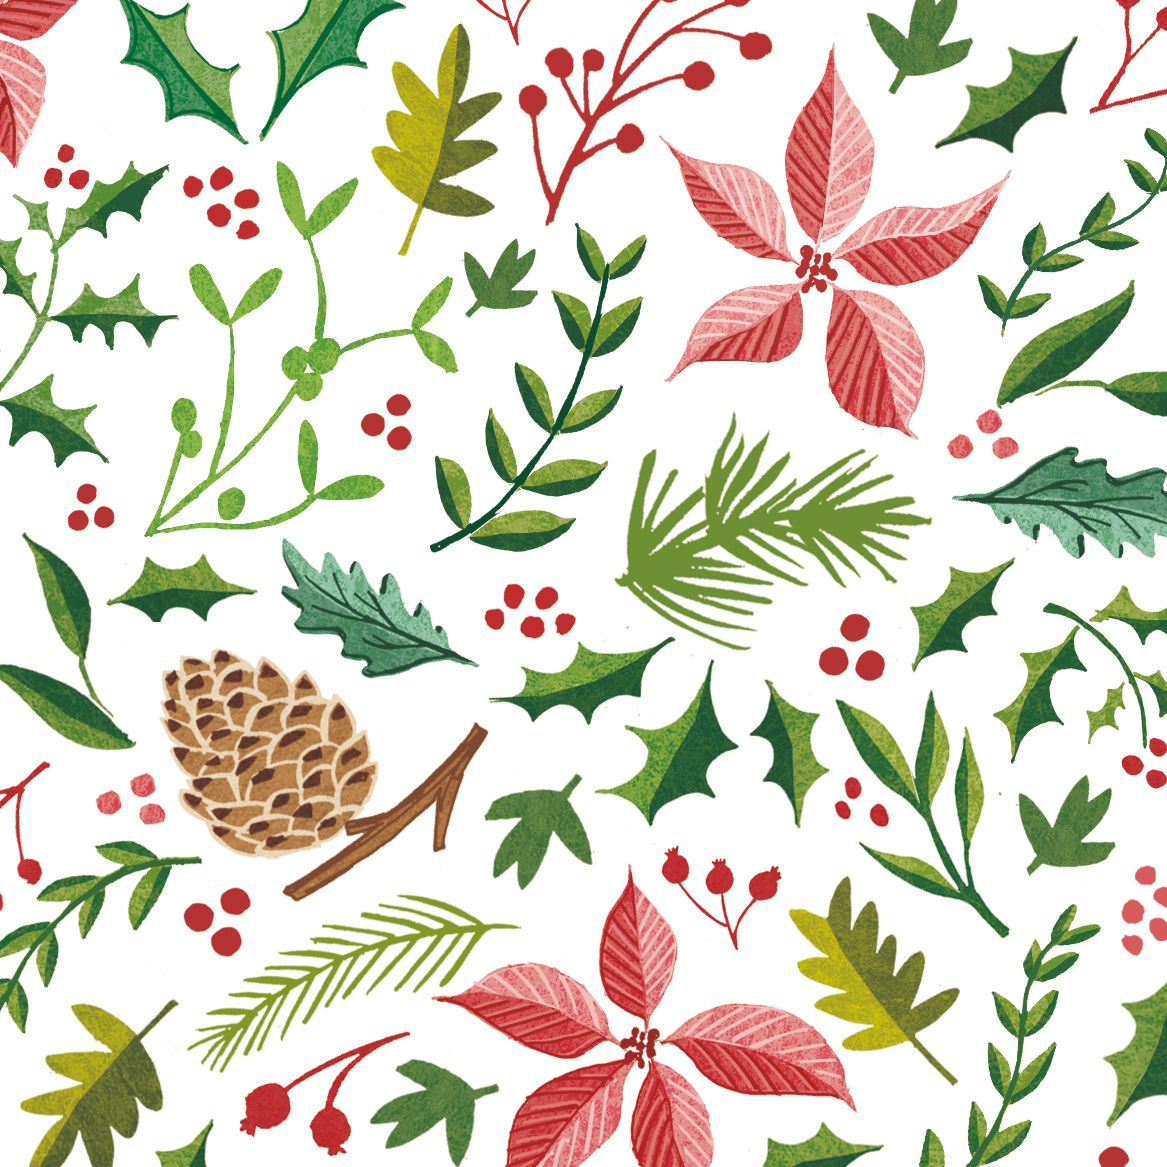 Christmas foliage clipart clip art royalty free library My Christmas foliage illustrations, with holly, berries, pine cones ... clip art royalty free library